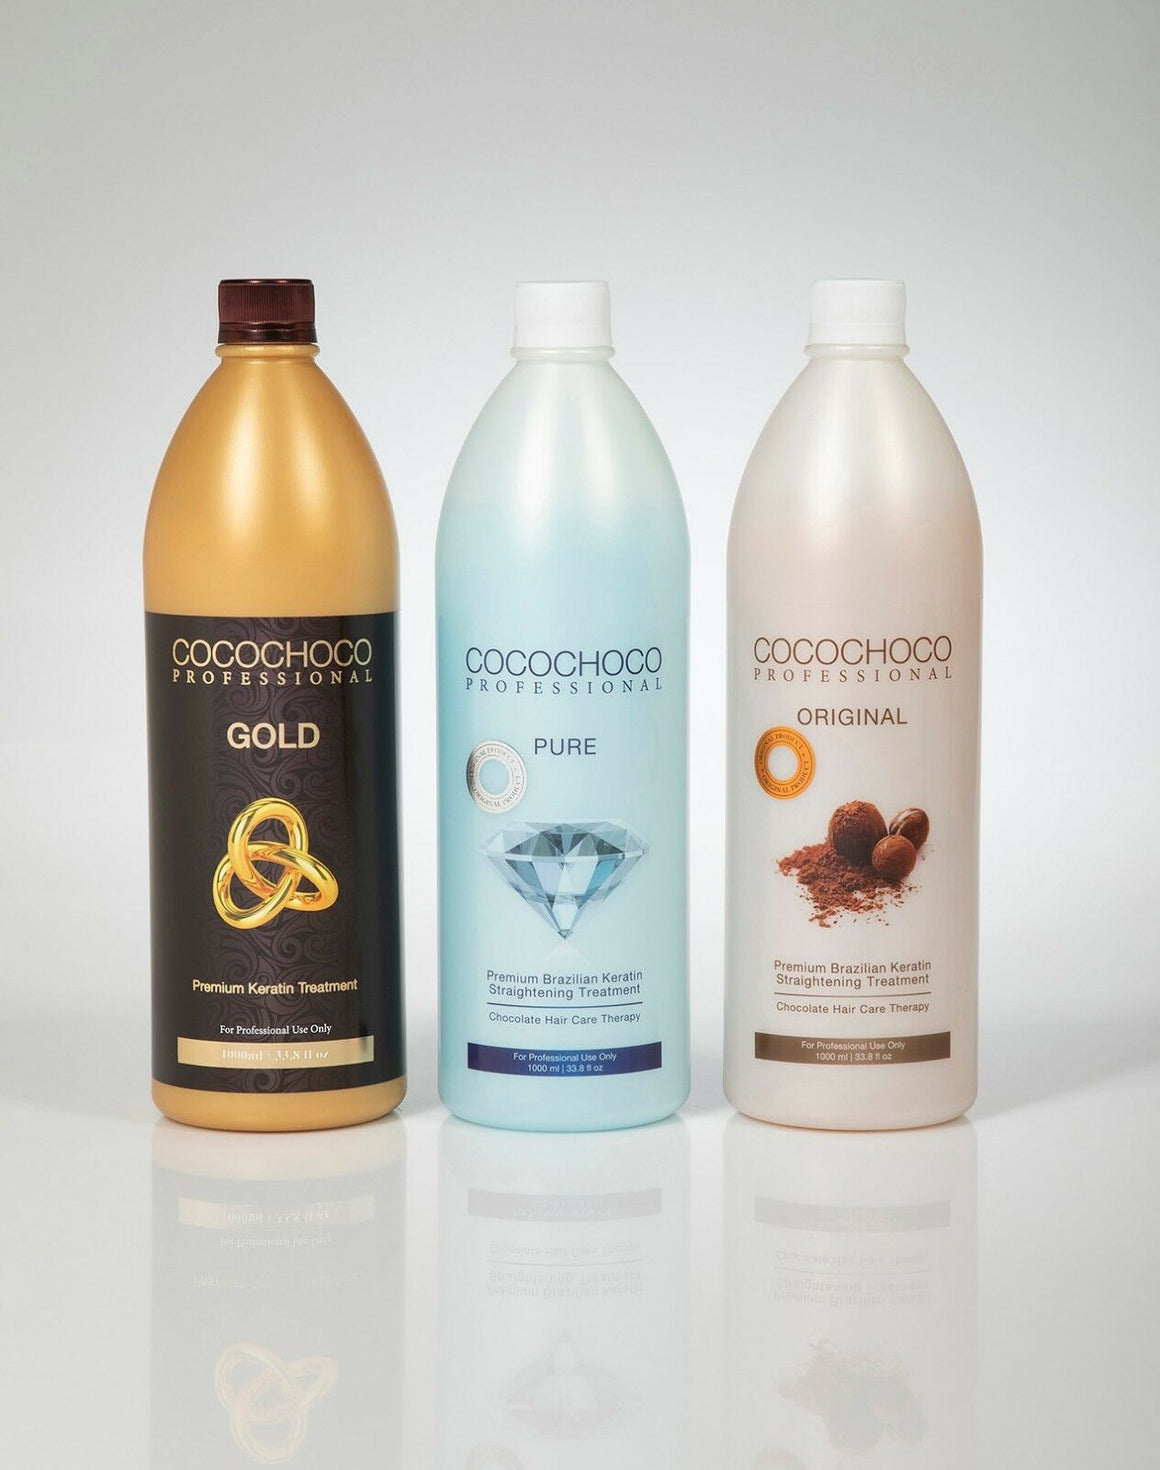 COCOCHOCO PROFESSIONAL ORIGINAL, GOLD & PURE 1000ml x 3